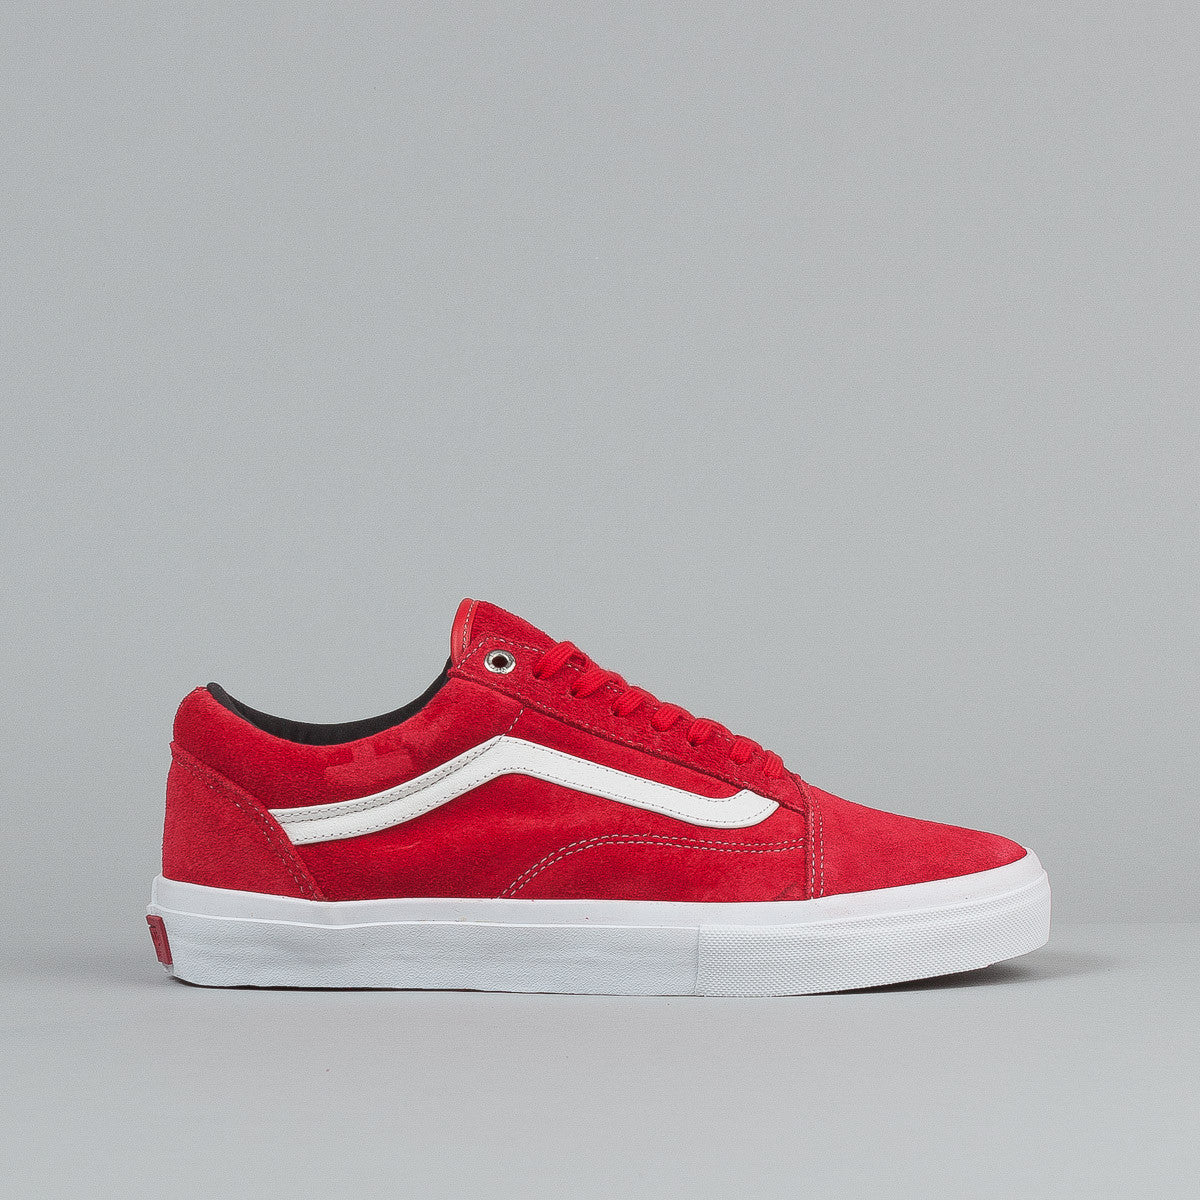 Vans Syndicate Old Skool Pro 'S' Shoes